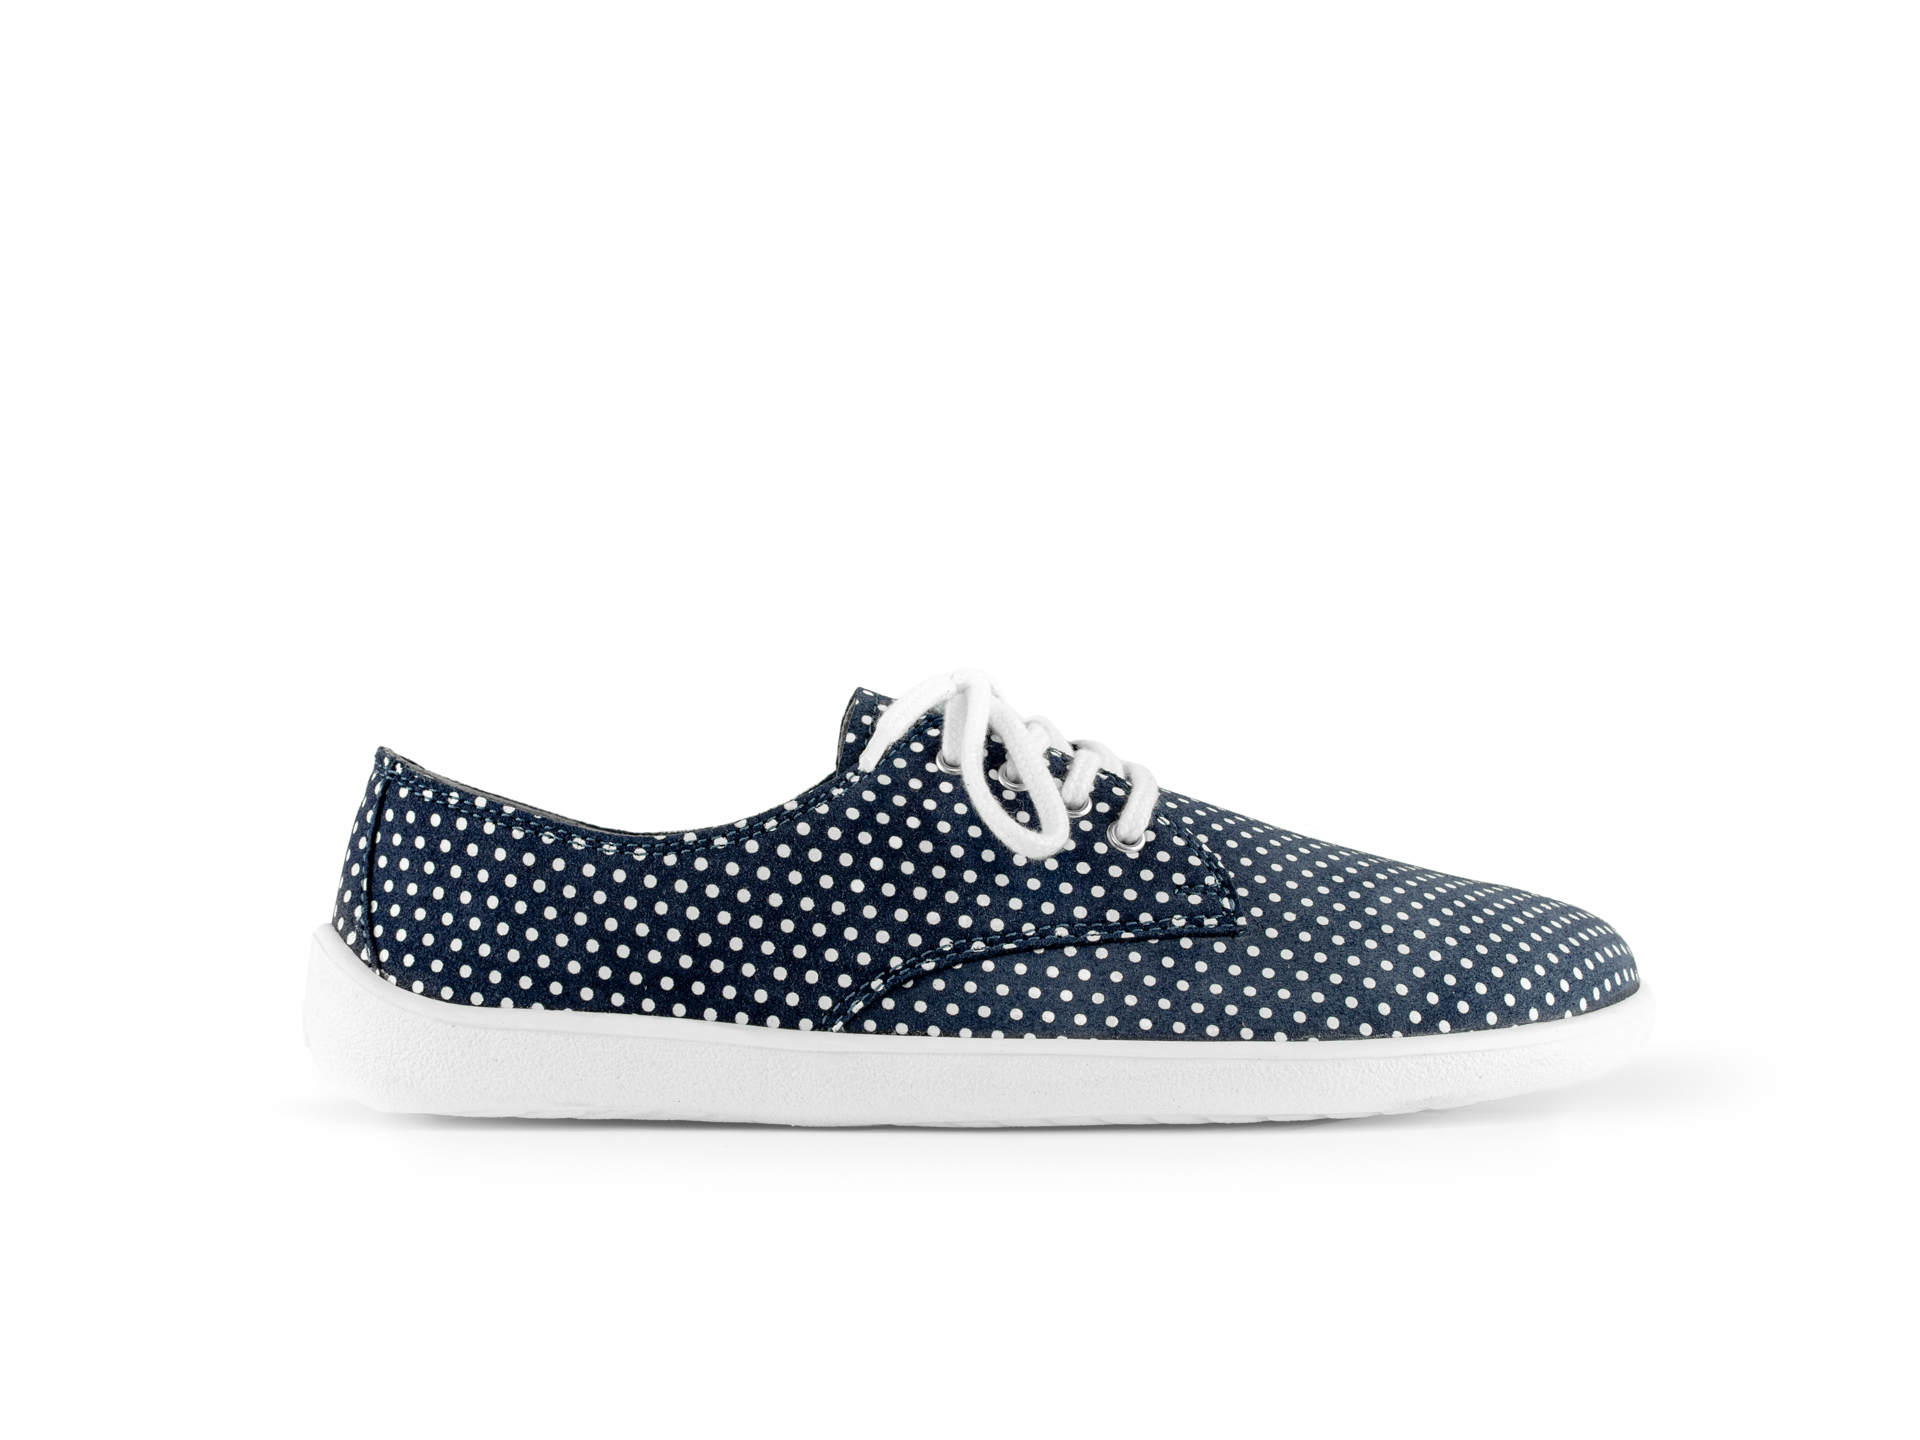 Barefoot Shoes - Be Lenka City - Dark Blue with White Dots 40